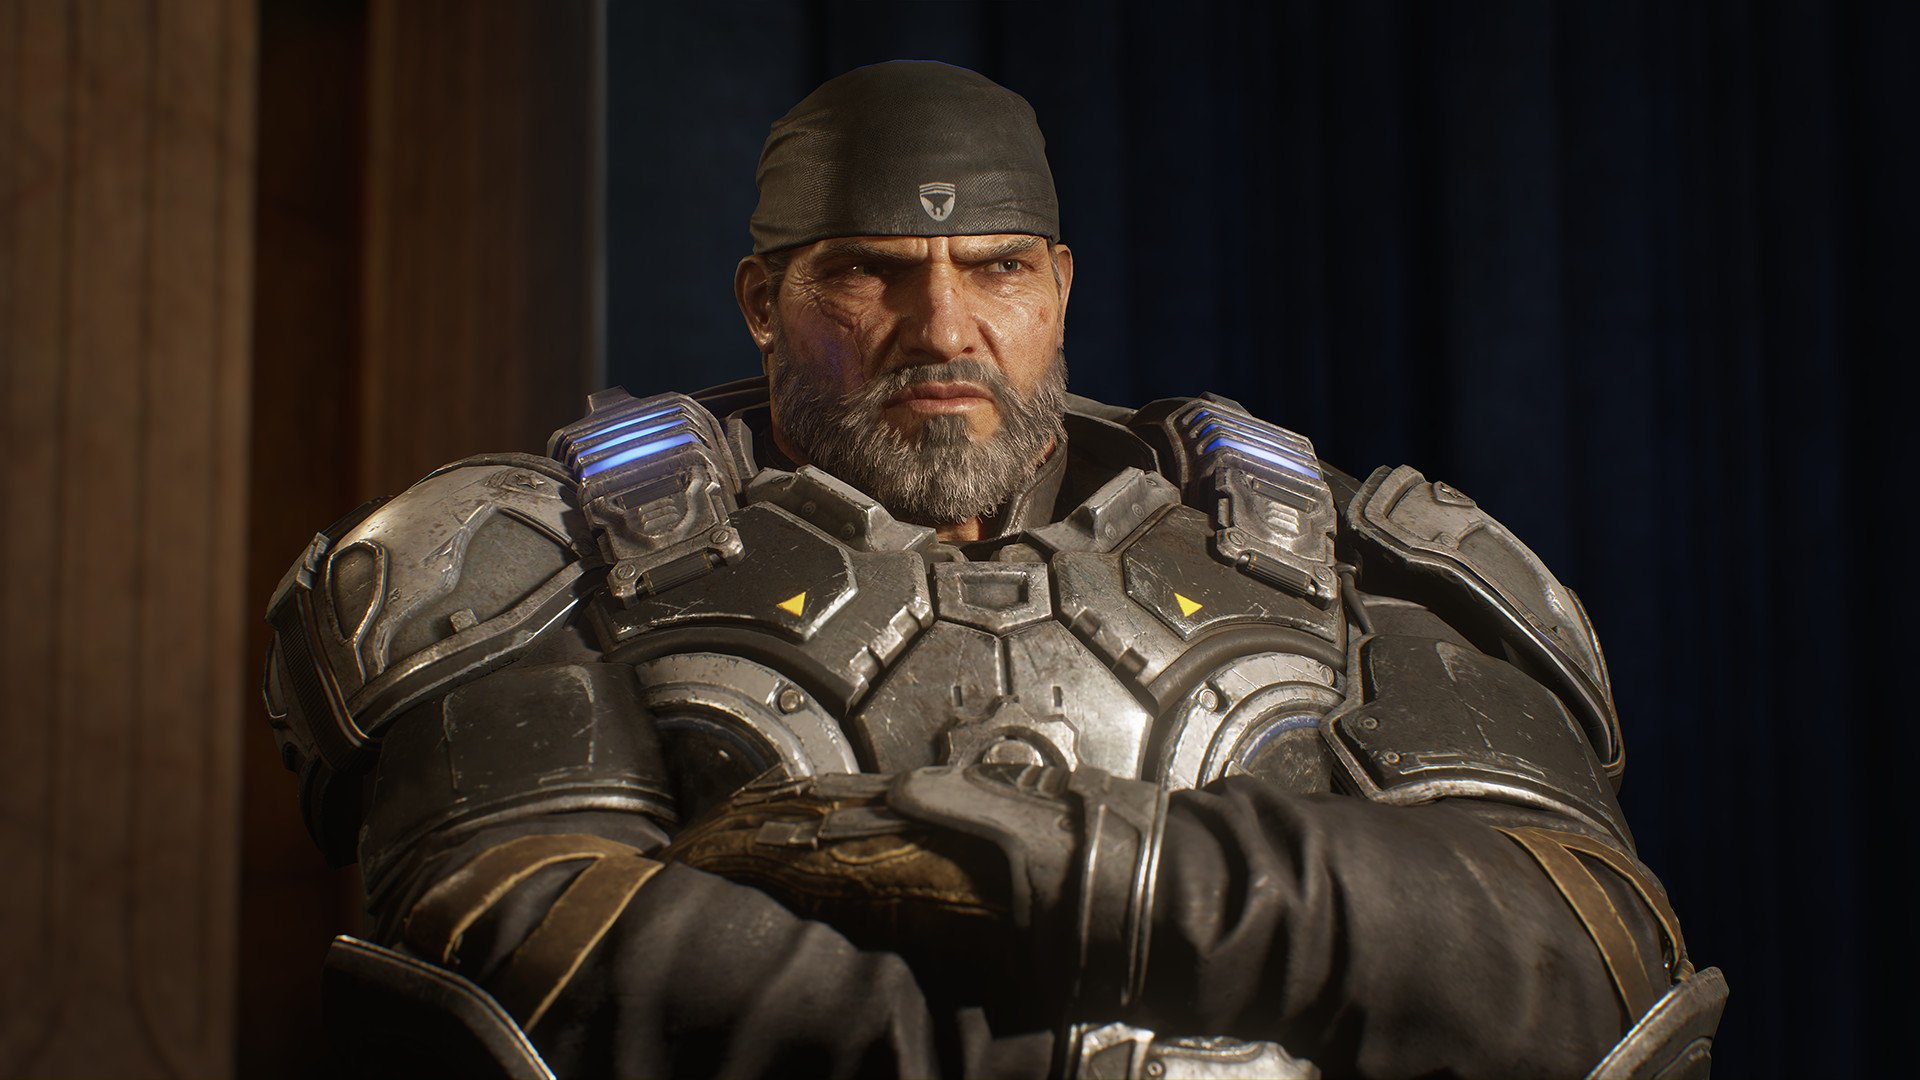 The best Gears 5 deals for Black Friday 2019